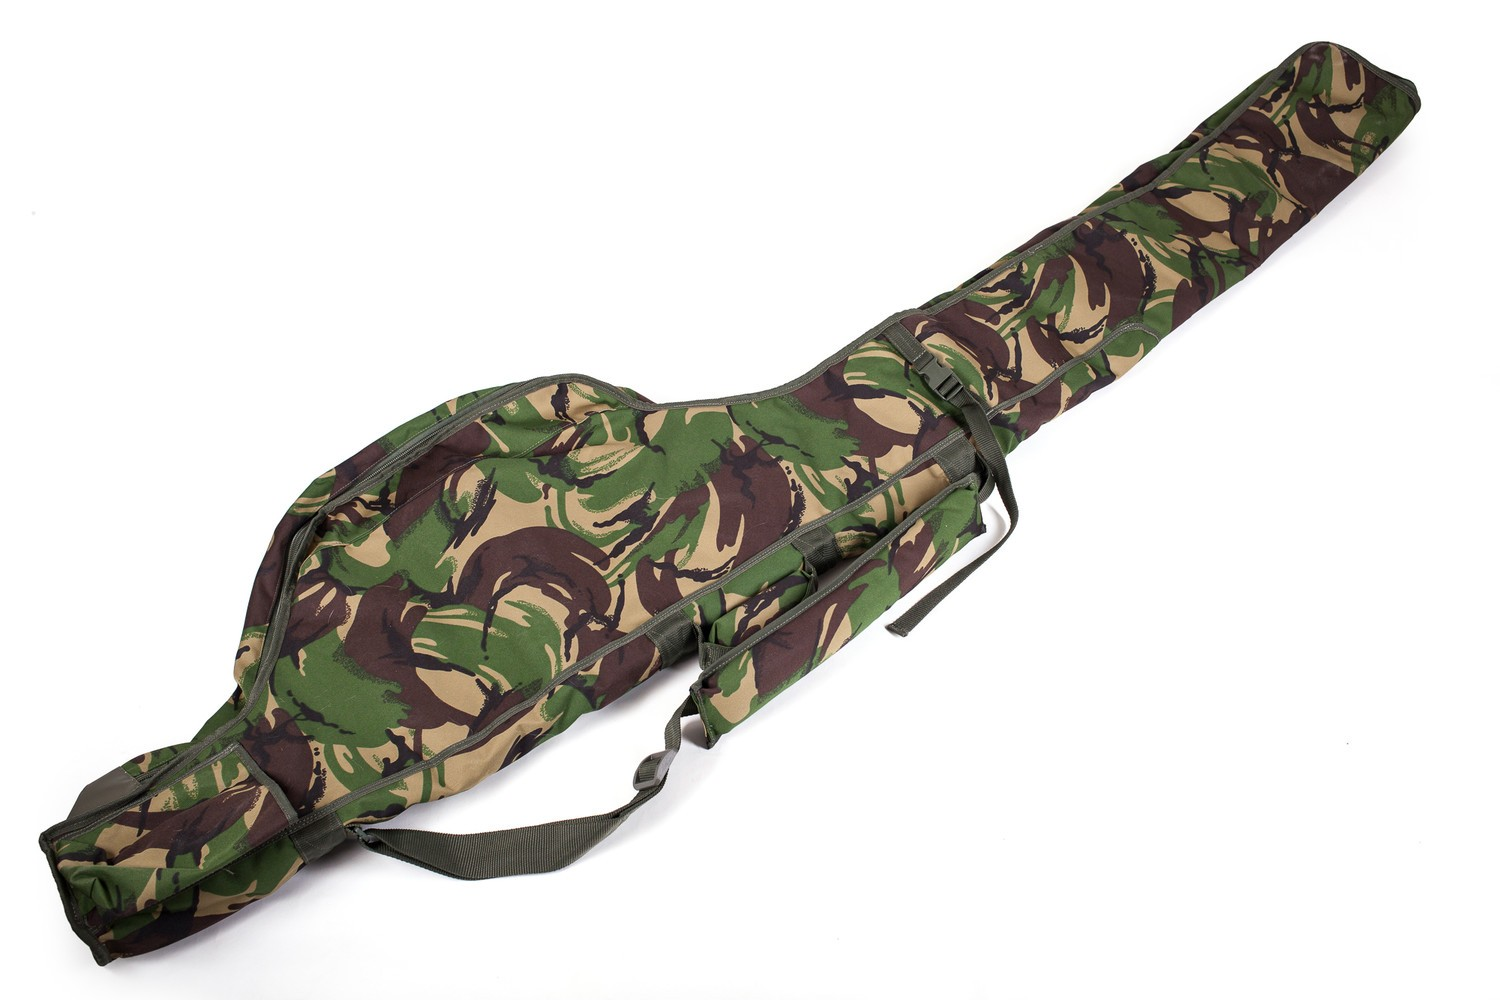 Cotswold Aquarius - Woodland Camo 5 Rod 13ft Trident Rod Holdall